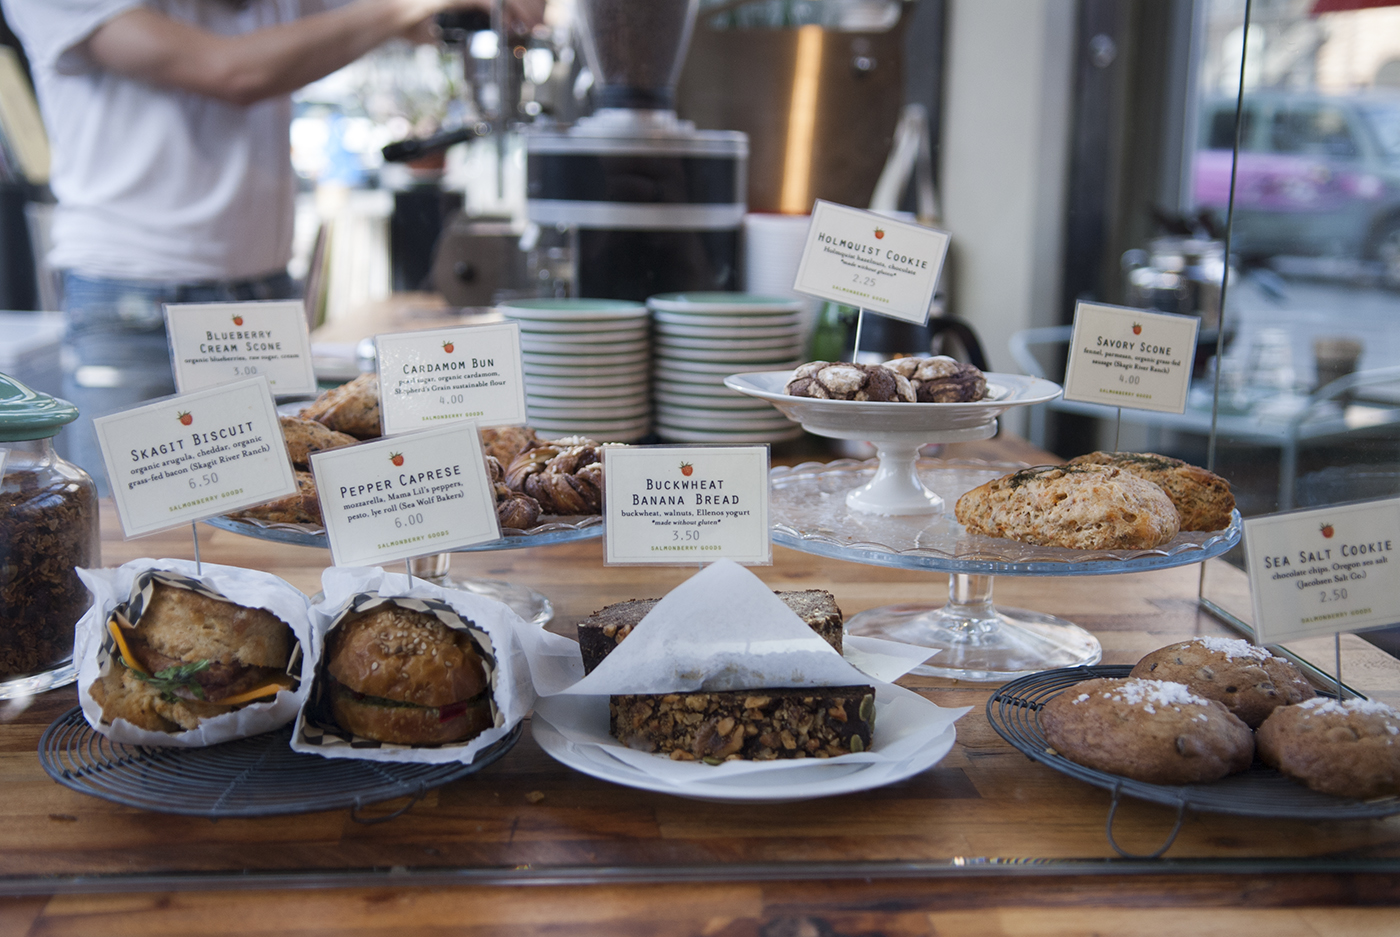 Match made in Washington. - We teamed our single origin coffees with Salmonberry Goods' seasonal farm-to-table pastries to make your next gathering memorable.